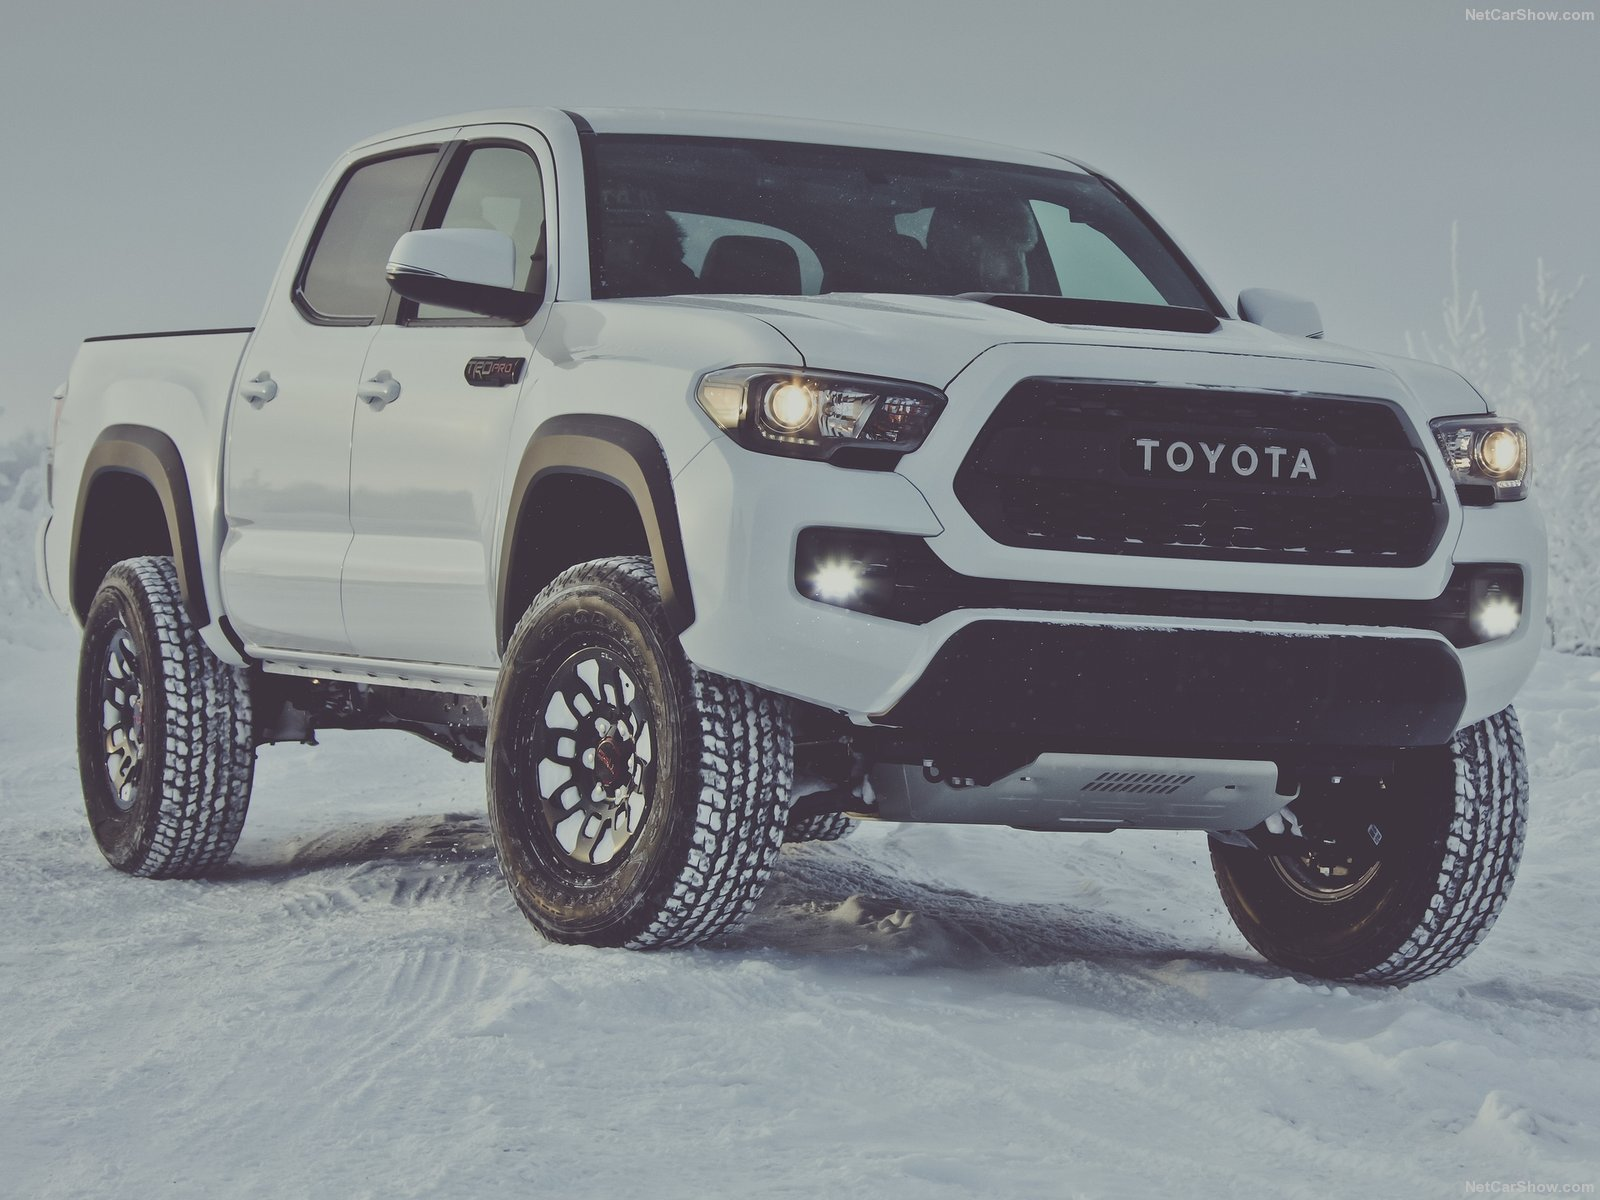 Toyota Tacoma Trd Pro Cars Truck Pickup White 2016 Wallpaper 1600x1200 891917 Wallpaperup